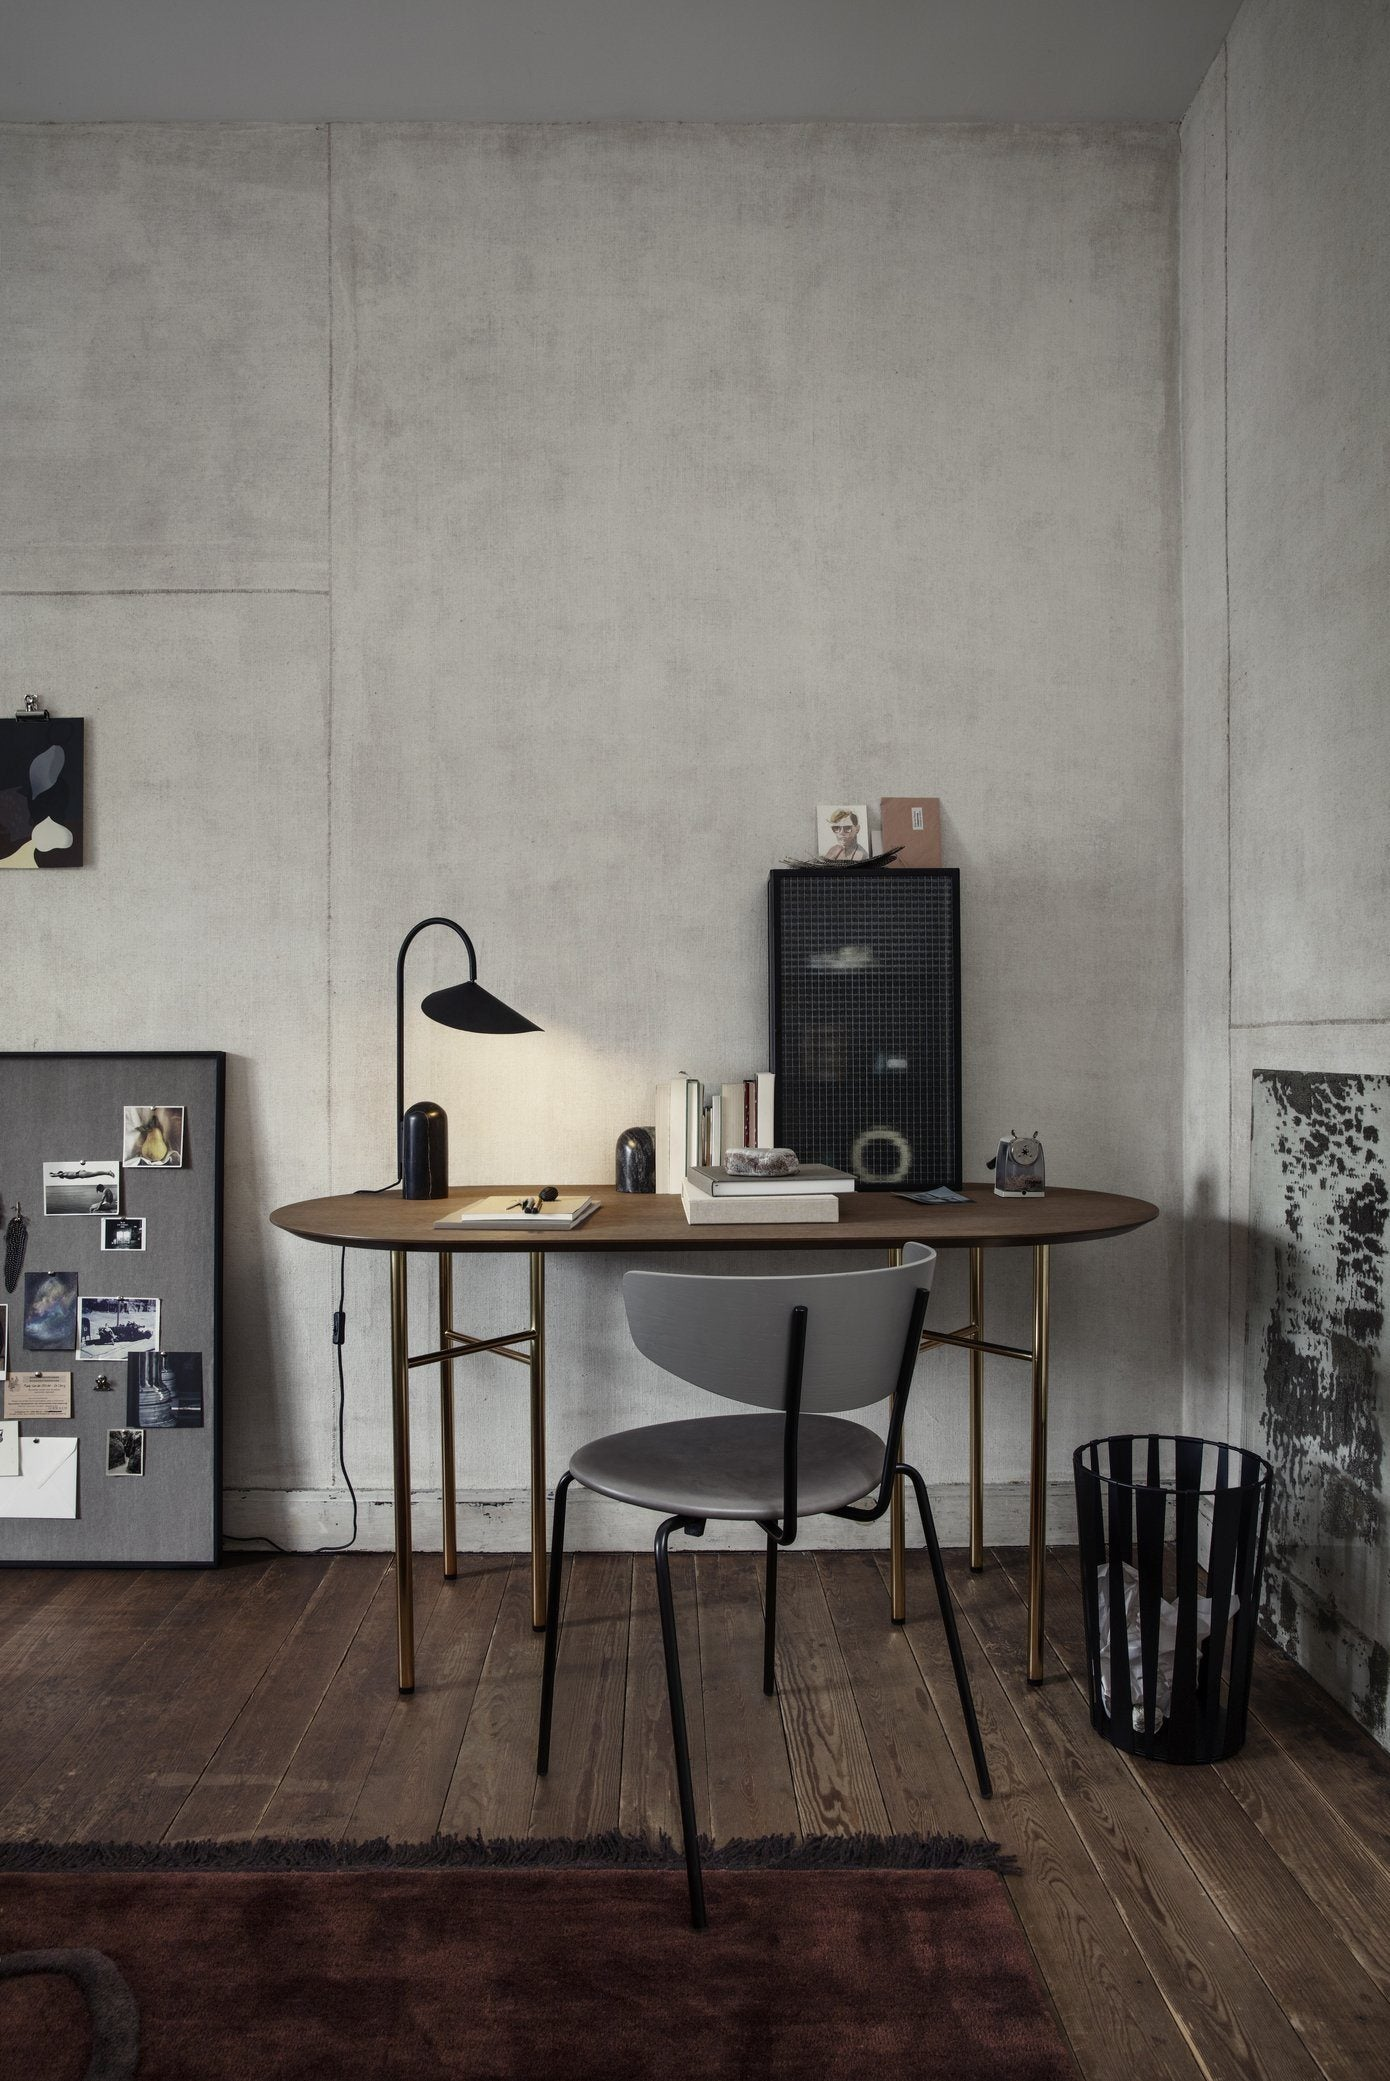 Ferm Living Mingle Table Legs - Metal | W68